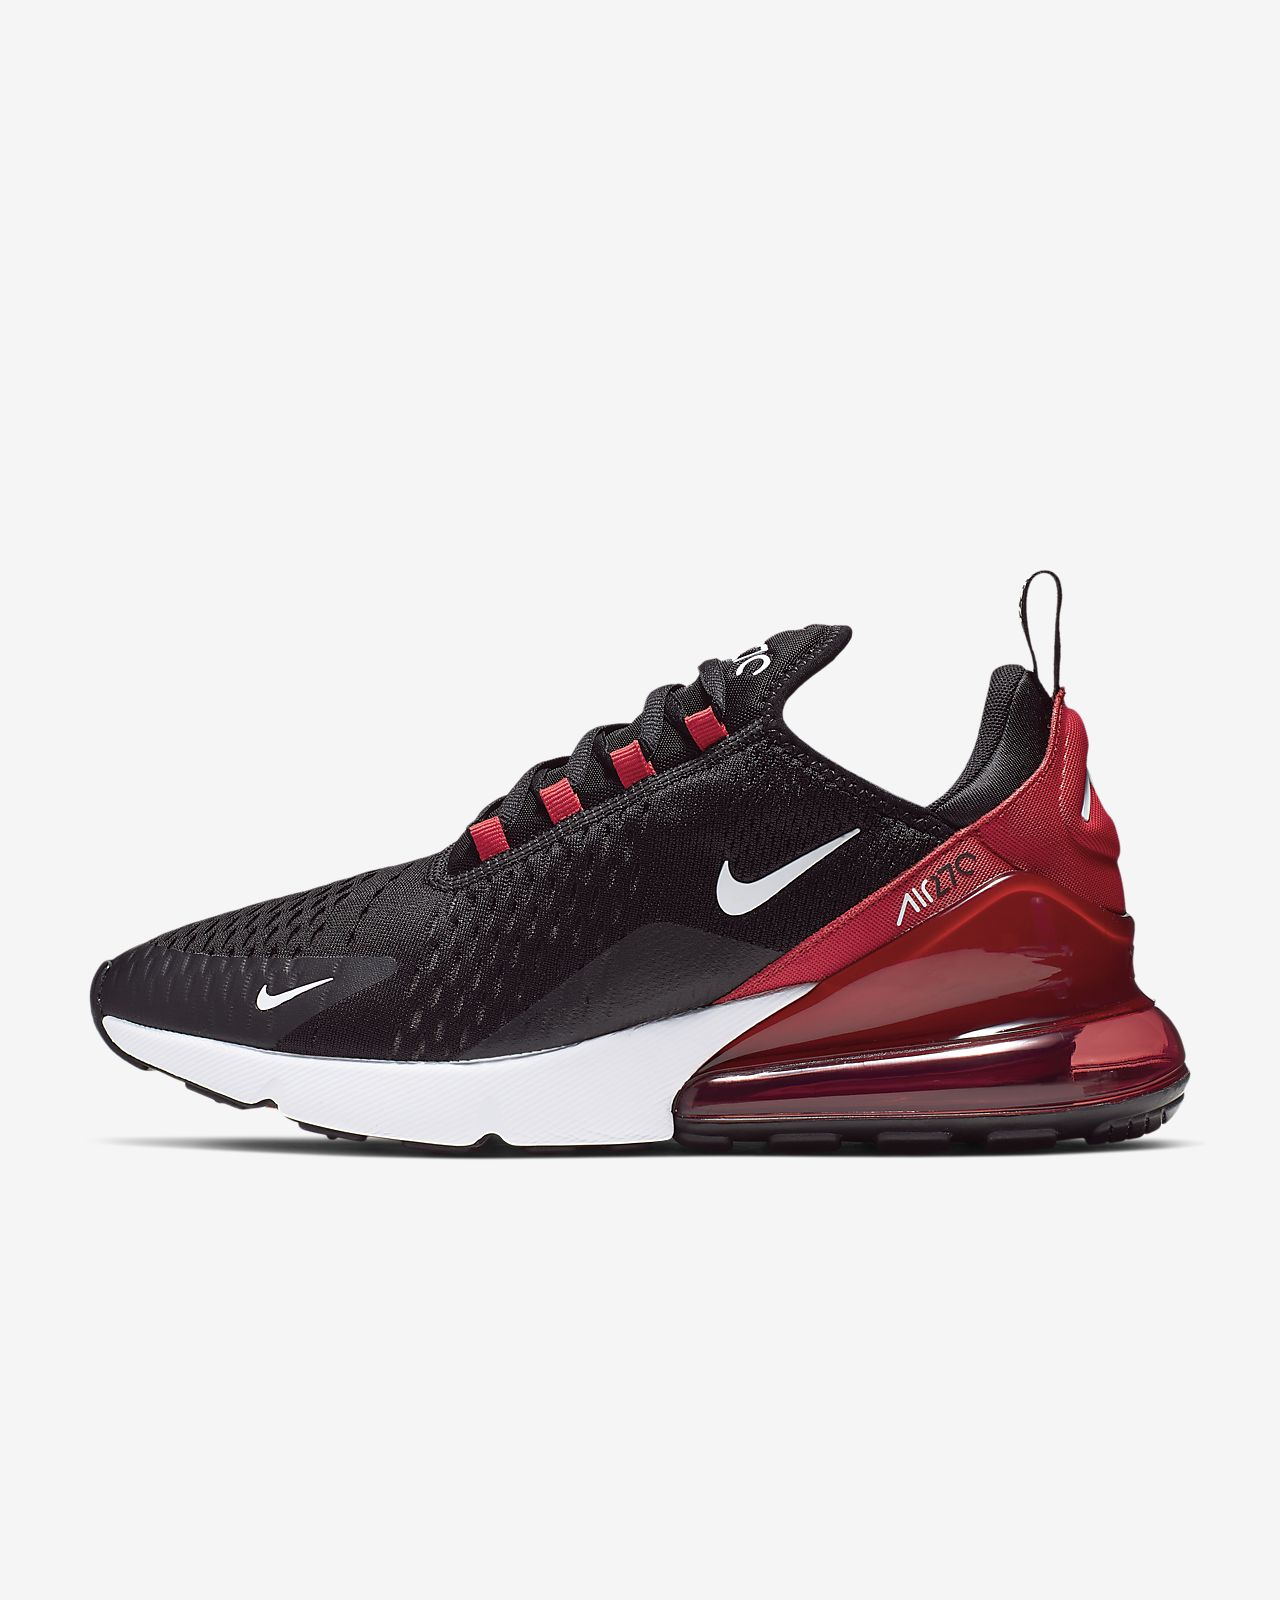 ca679a551fd6 Nike Air Max 270 Men s Shoe. Nike.com GB